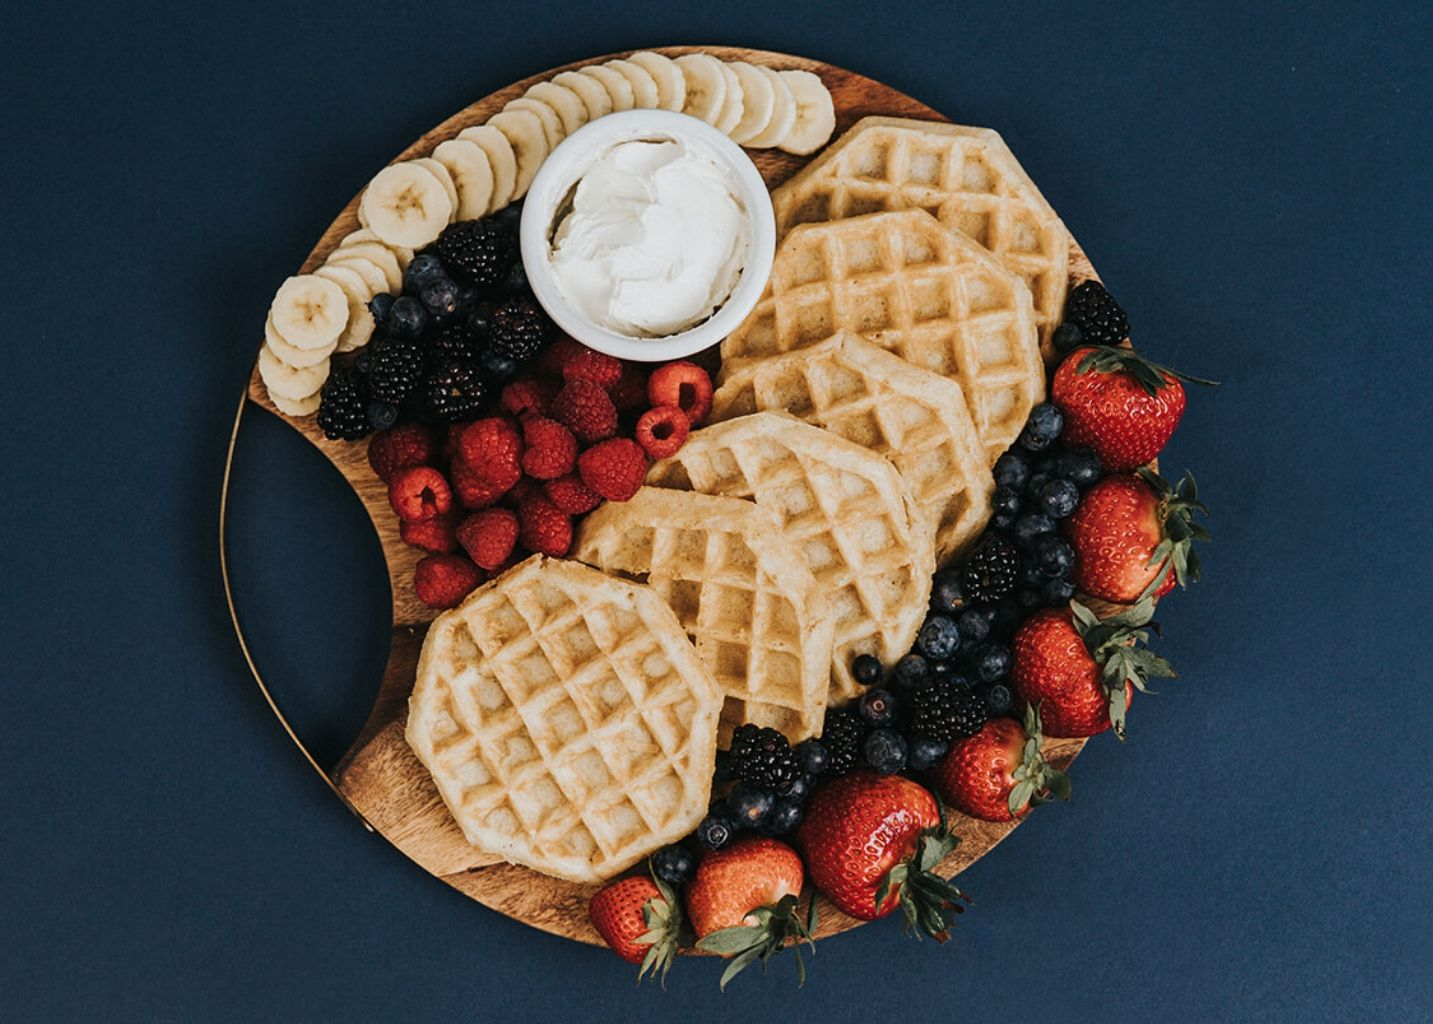 4th of July Food Ideas | Red White and Blue Snack Boards